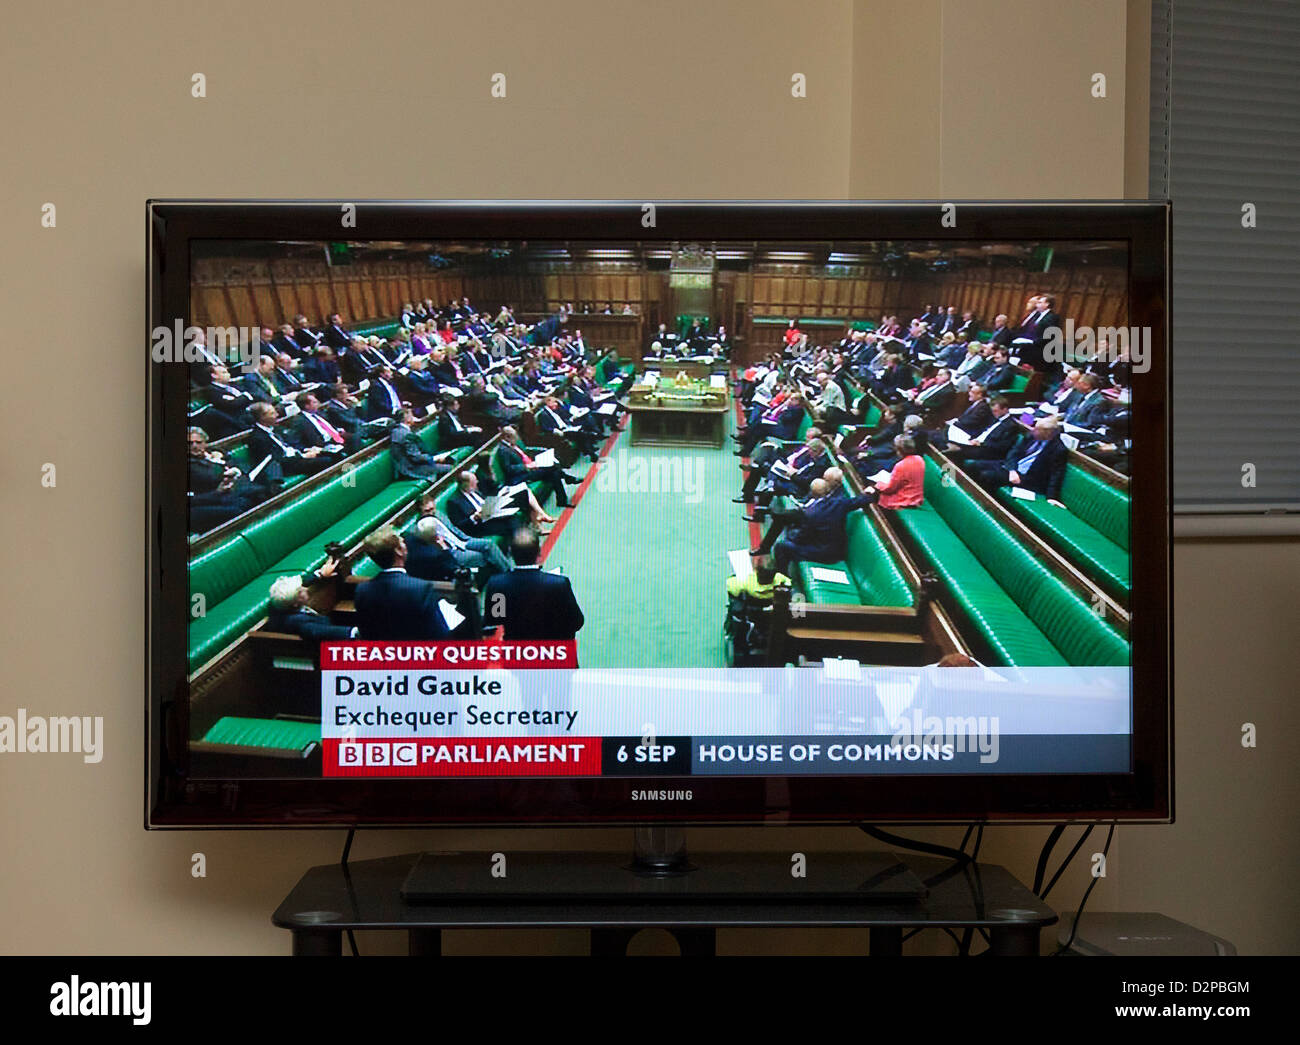 BBC Parliament TV channel showing Members / MP's in the